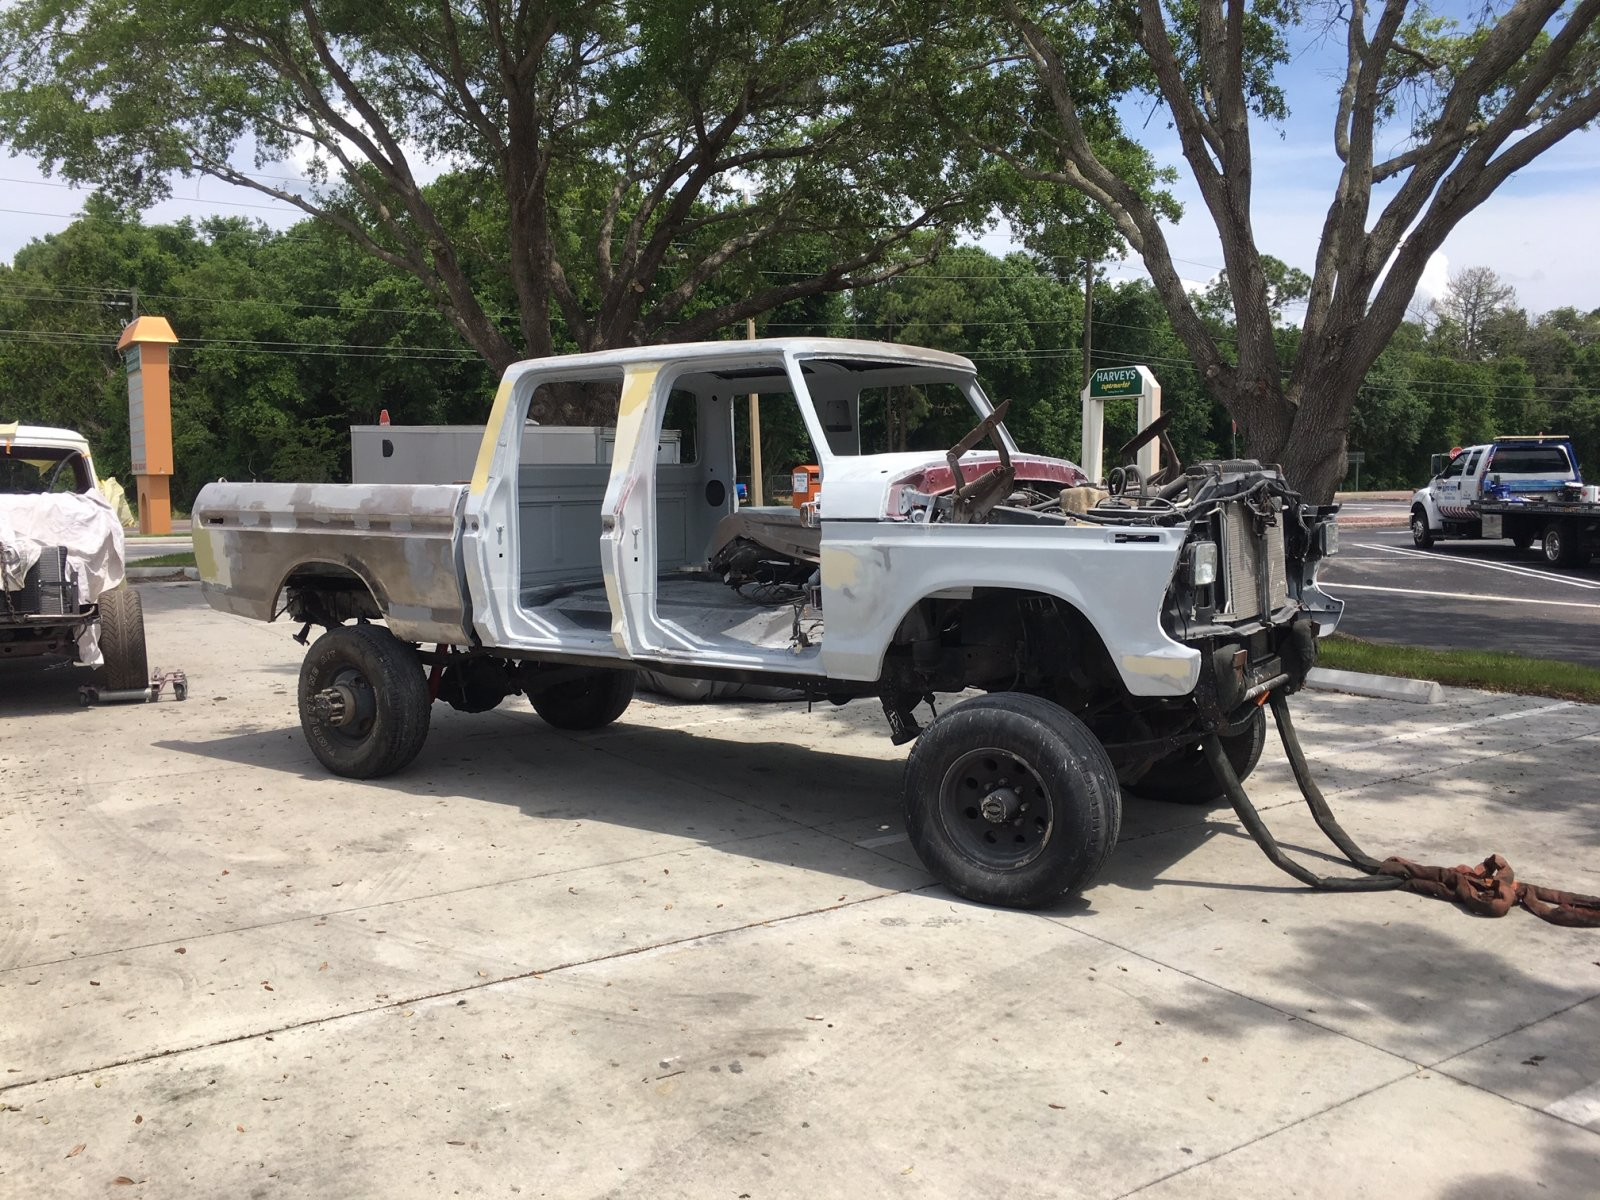 17 Year Old Built His Dream Truck 1977 Ford F250 Crew Cab 7.3L 4.jpeg